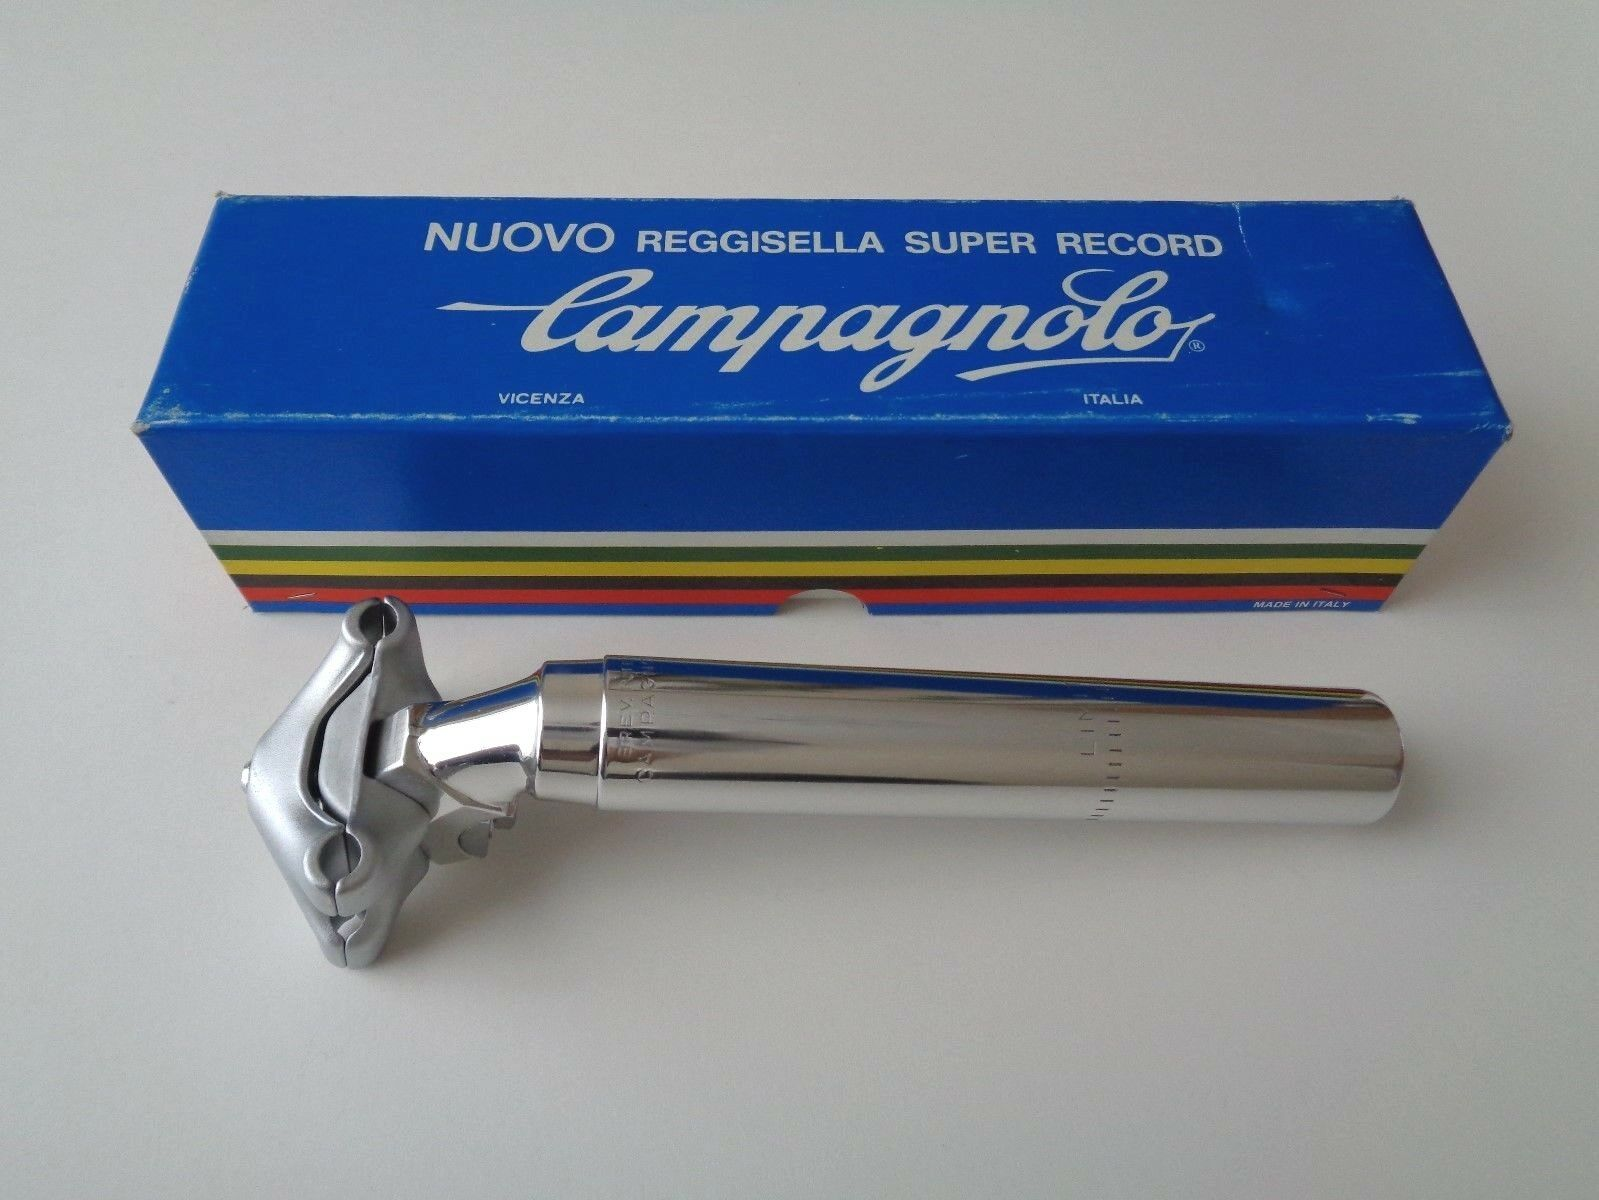 NOS Vintage 1980s Campagnolo Super Record 'last generation' seatpost 26mm